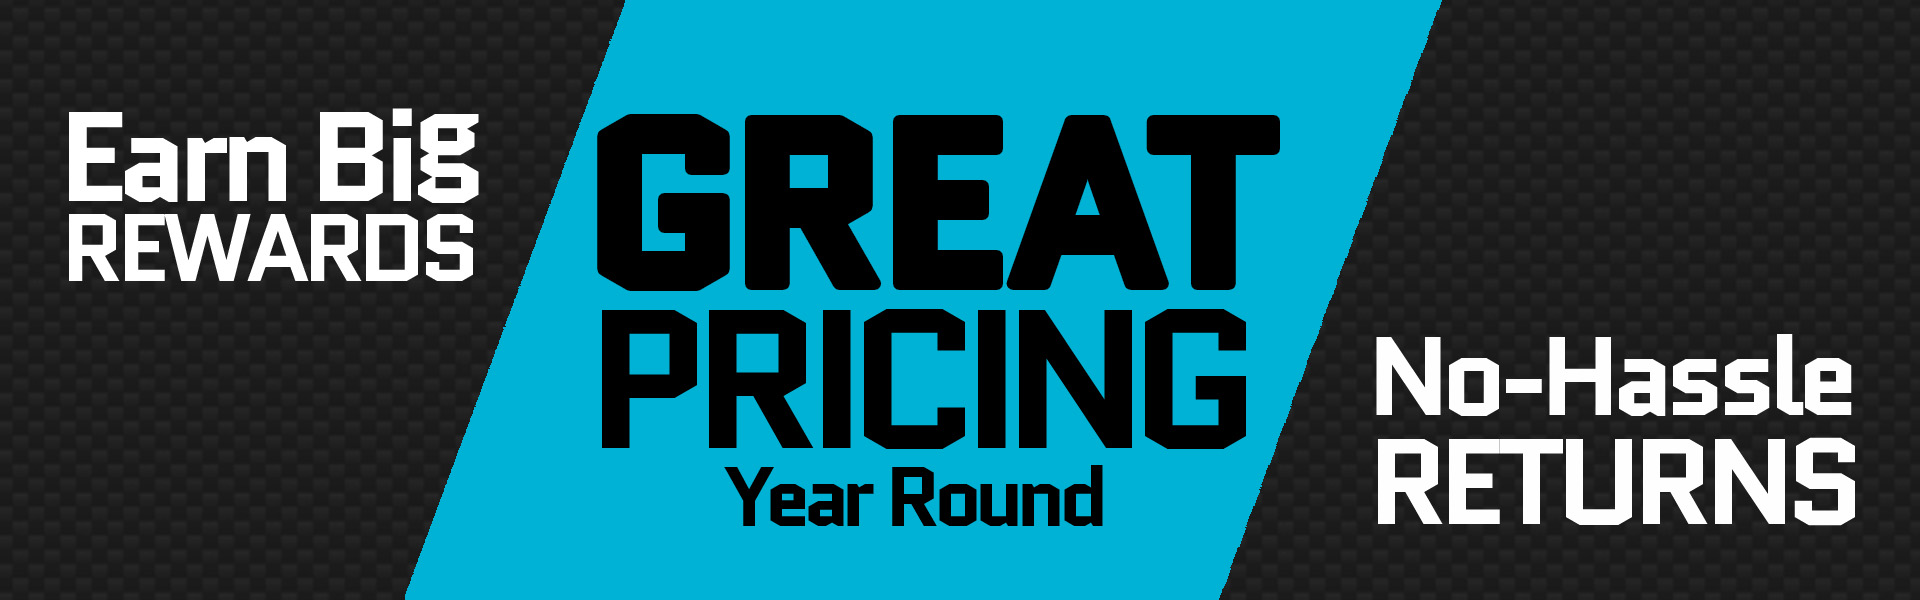 Earn big rewards, Great pricing year round, and No-Hassle Returns